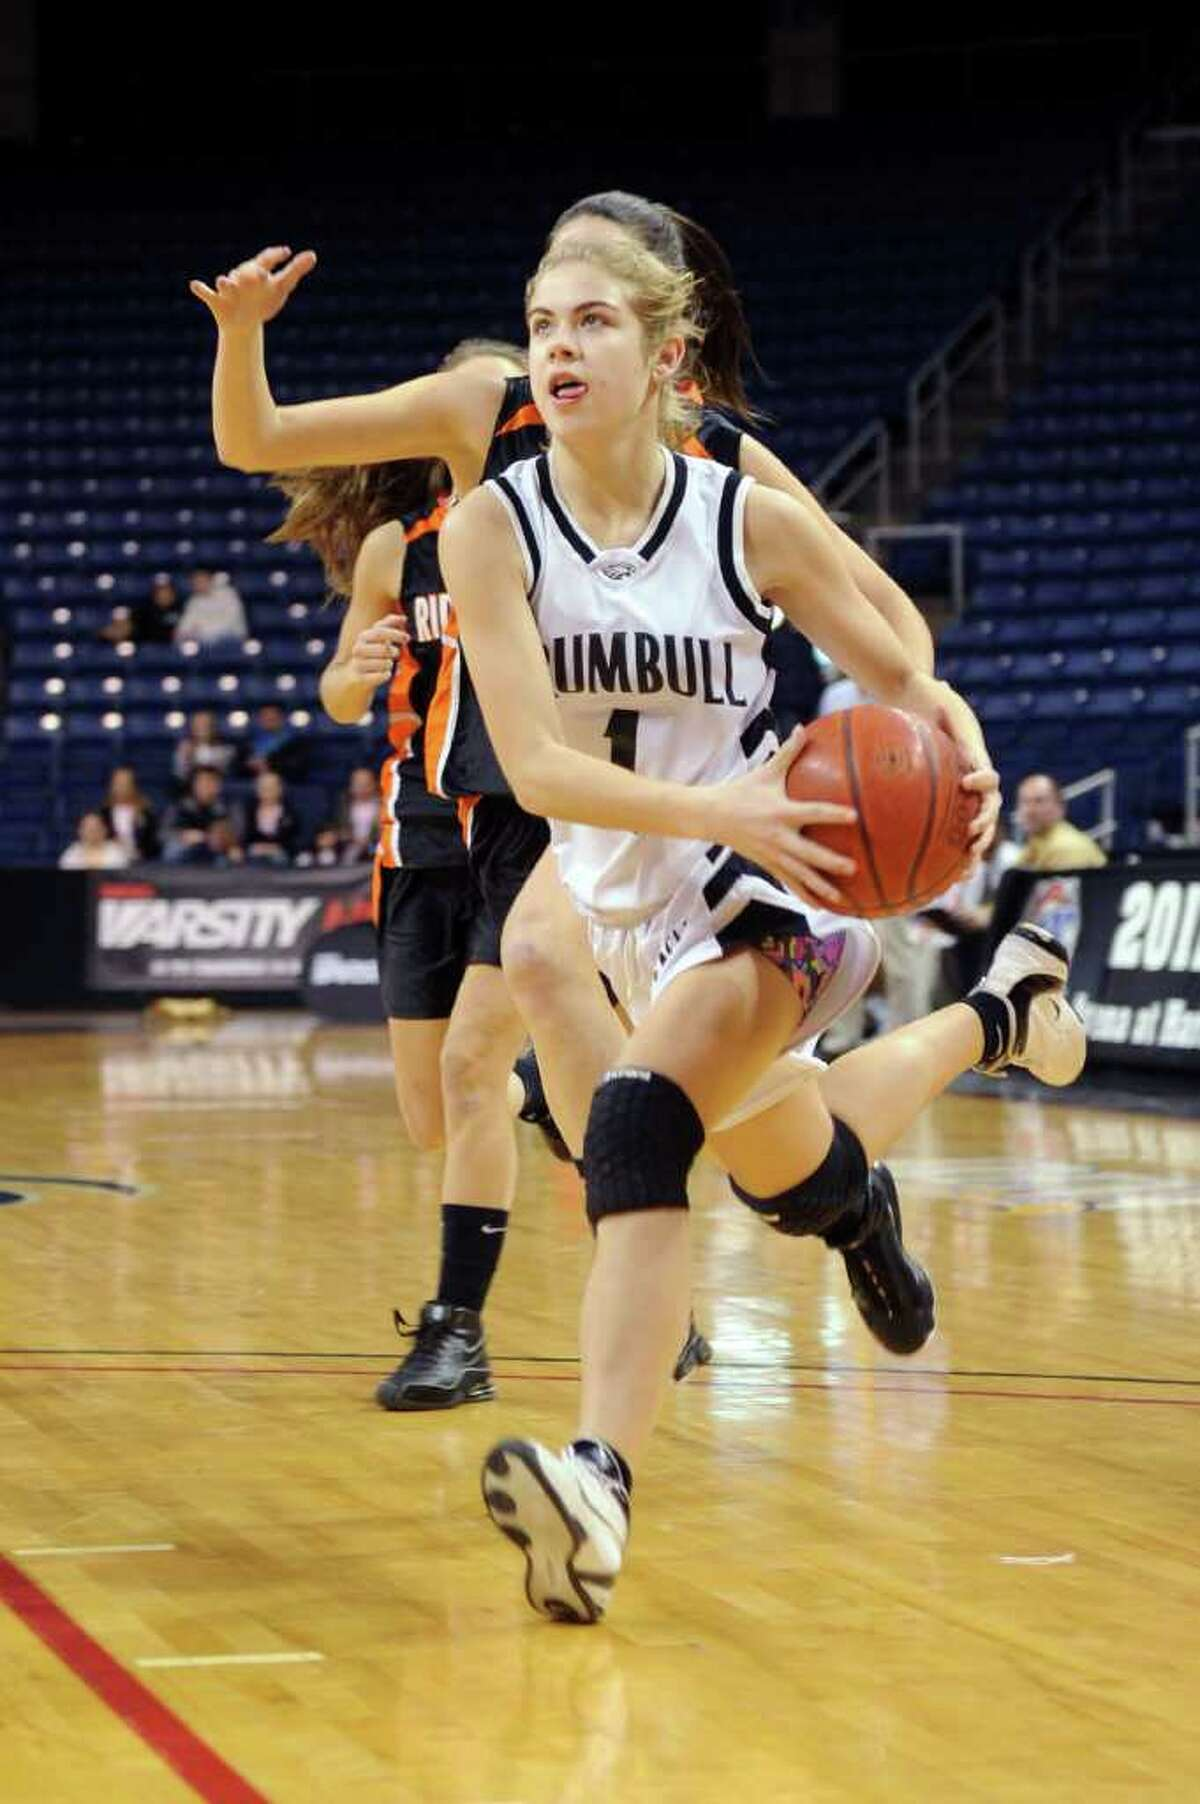 Trumbull's Alexa Pfohl dribbles the ball during Thursday's FCIAC girls basketball championship game at Webster Bank Arena at Harbor Yard on February 24, 2011. Pfohl was named Most Valuable Player after the game.